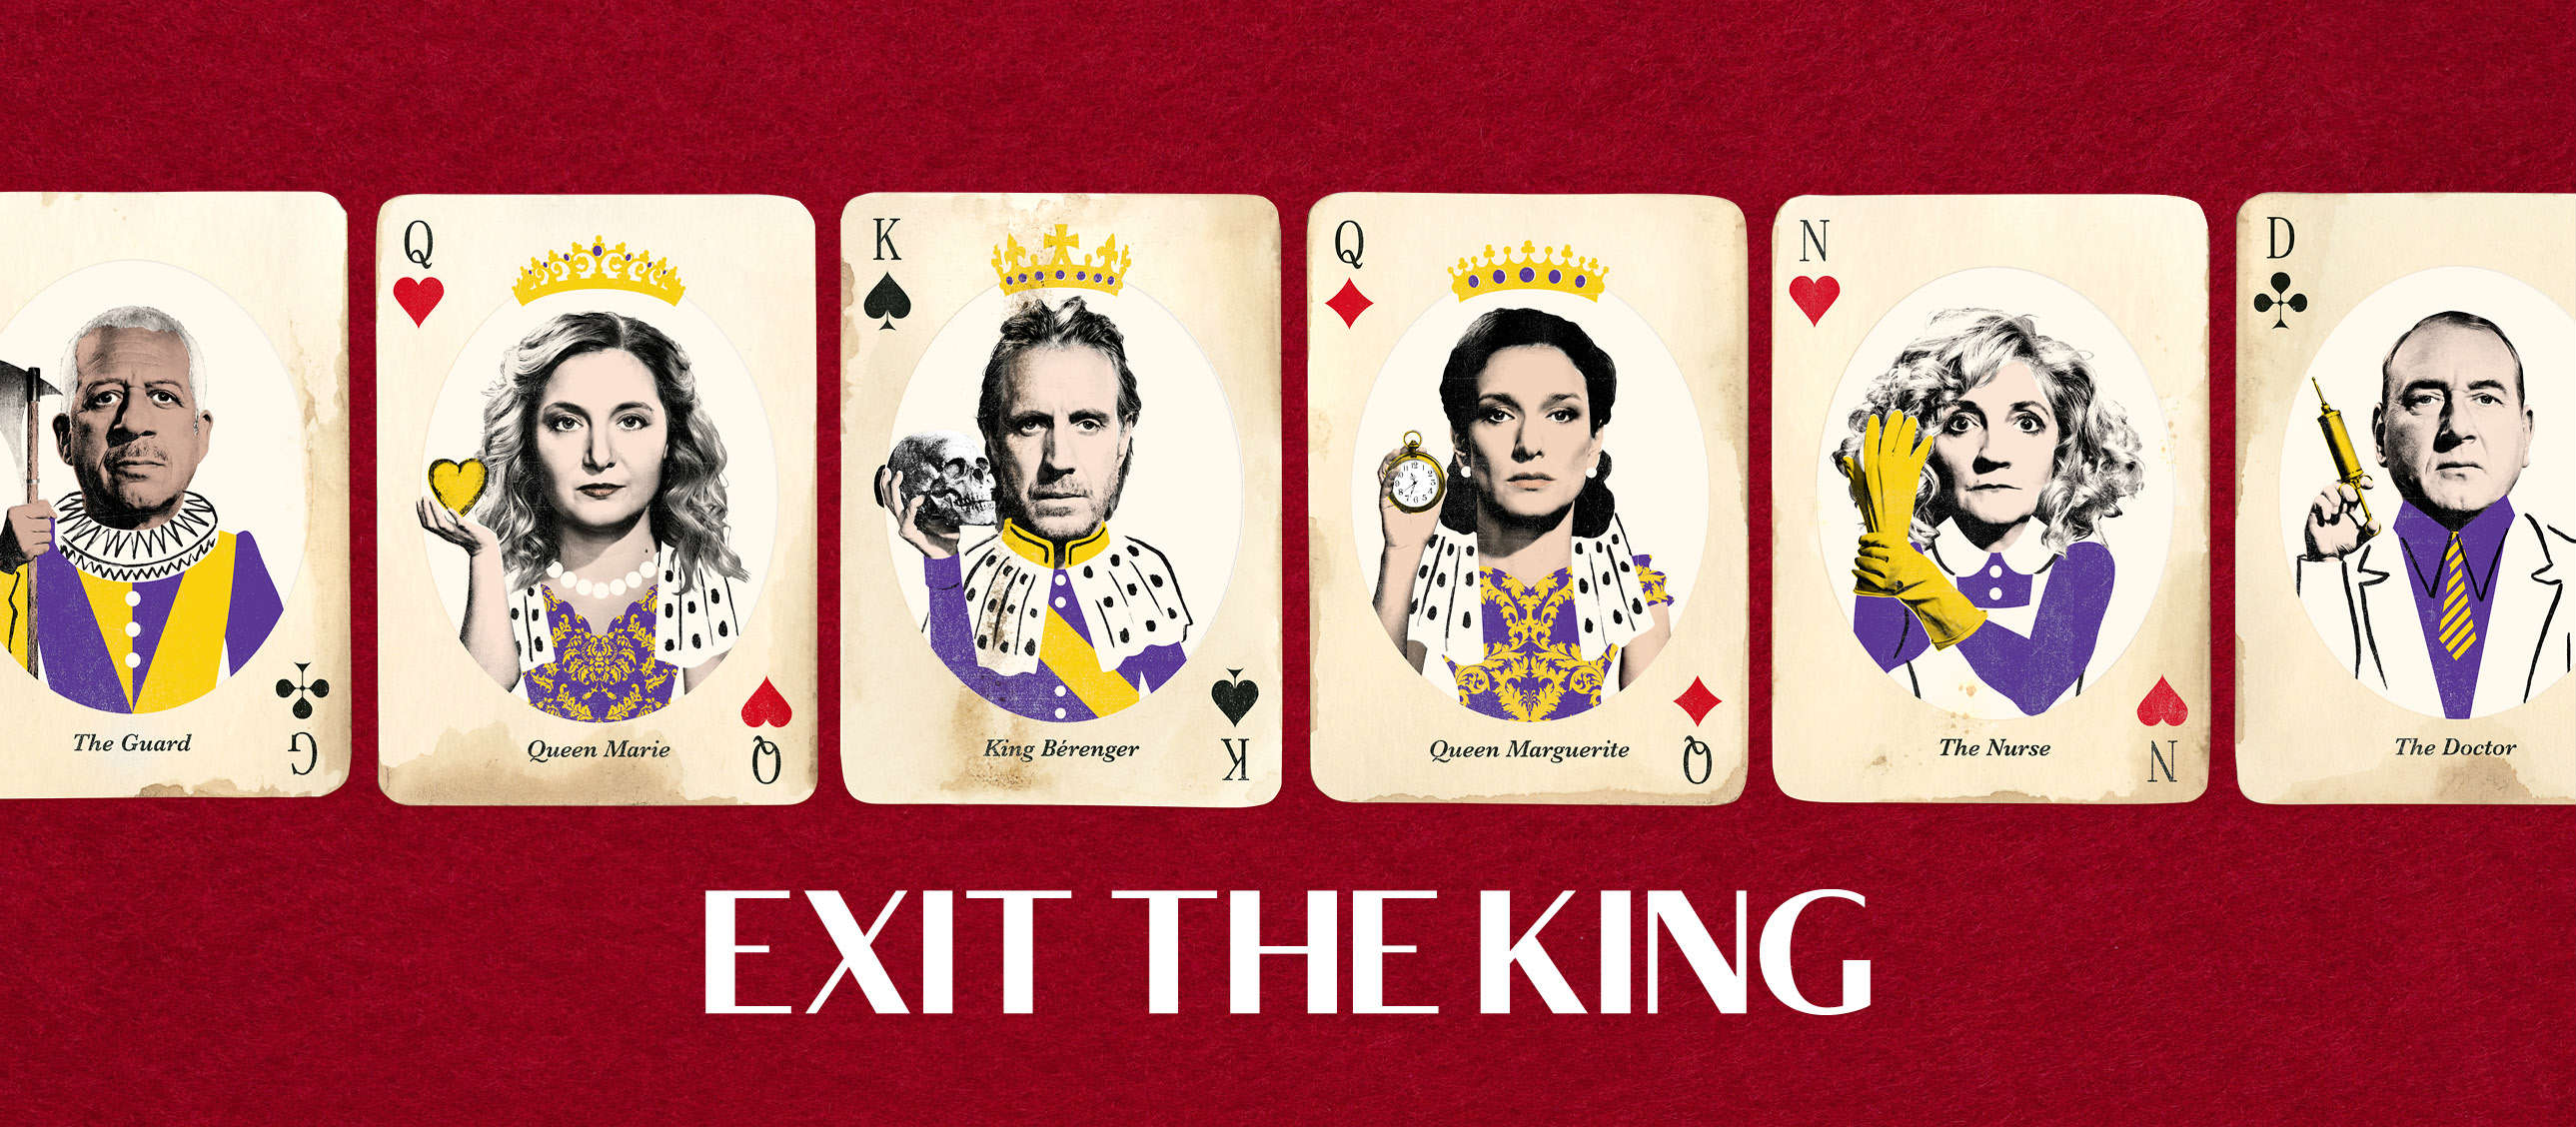 Exit the King - Photos of Indira Varma (Queen Marguerite),  Rhys Ifans (King Berenger), Amy Morgan (Queen Marie), Derek Griffiths (The Guard), Debra Gillett (The Nurse) and Adrian Scarborough (The Doctor) as playing card characters